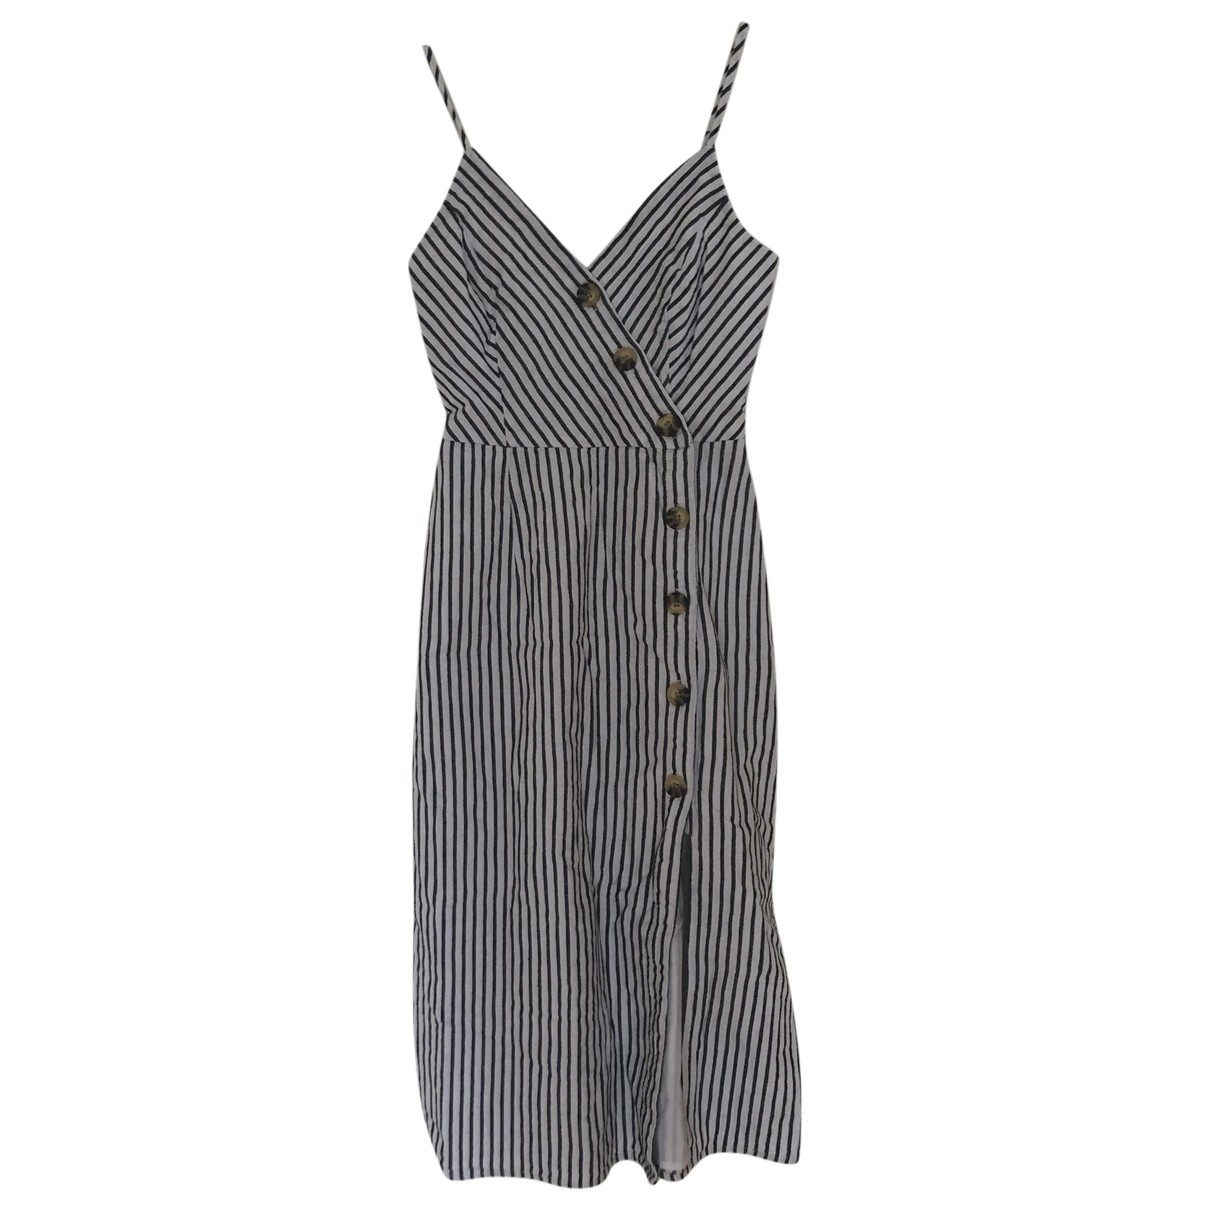 Abercrombie & Fitch \N Cotton dress for Women XS International